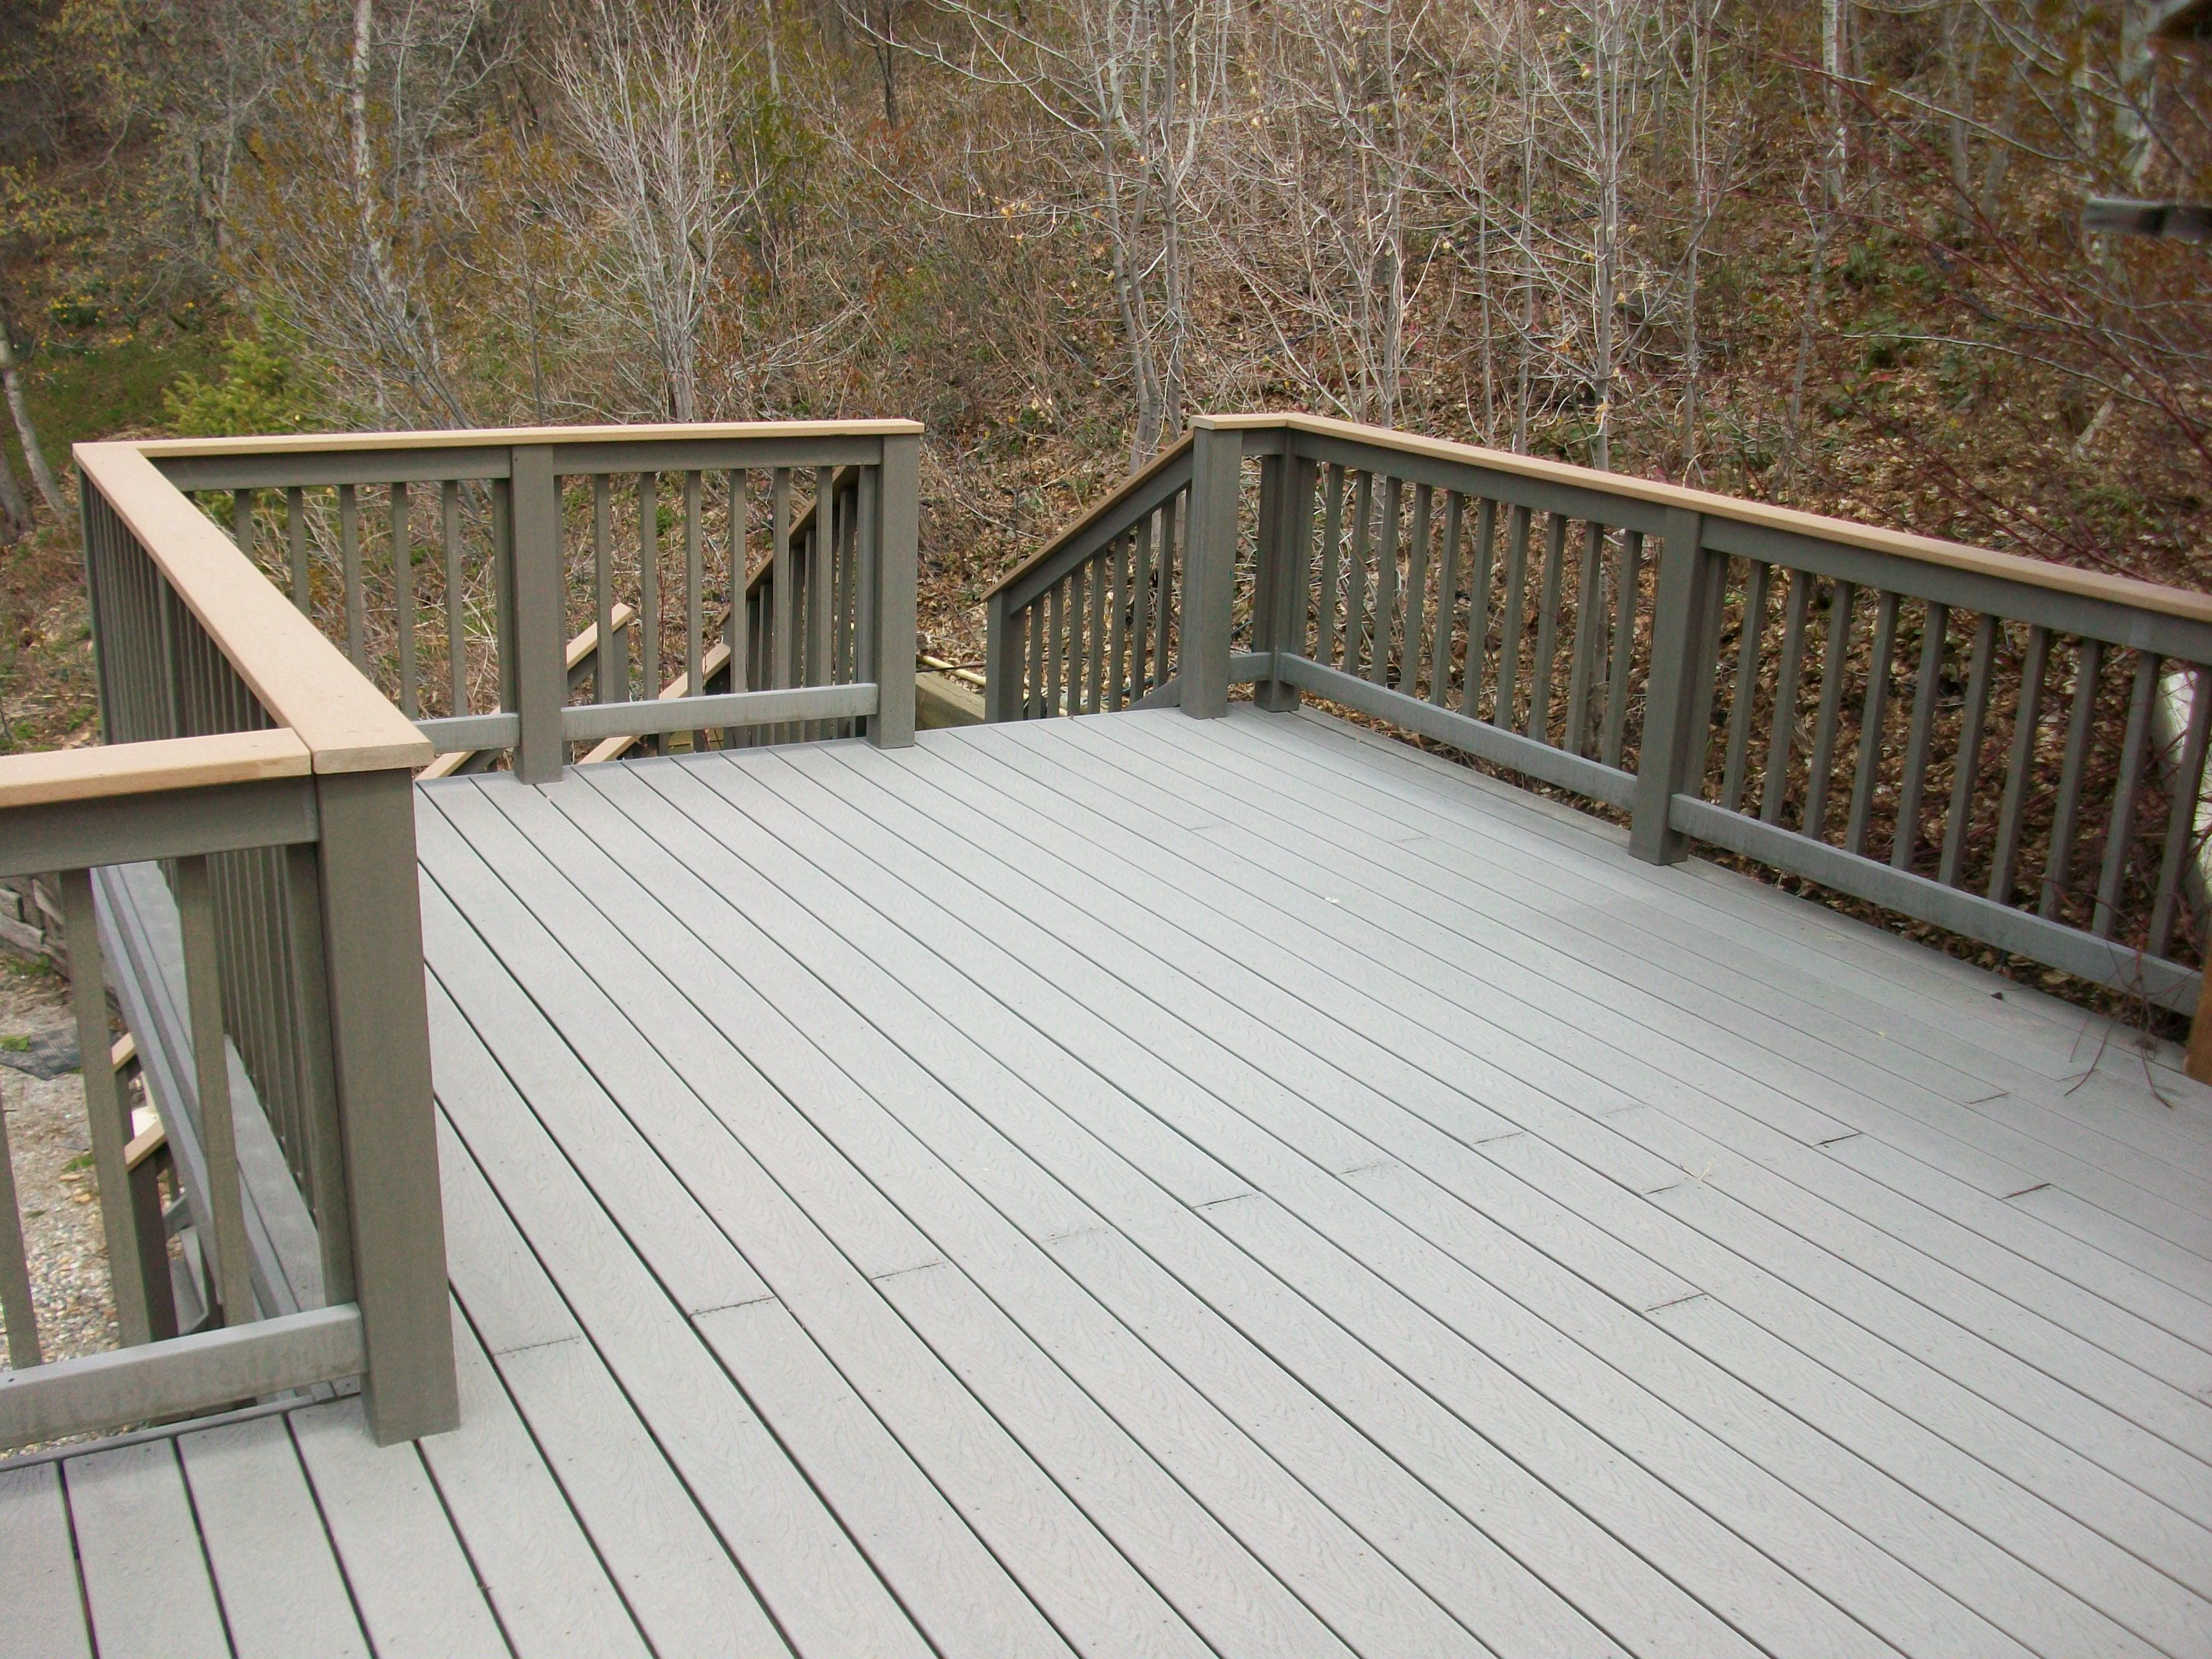 Charming trex decking colors hot in the sun with nice for Composite flooring for decks